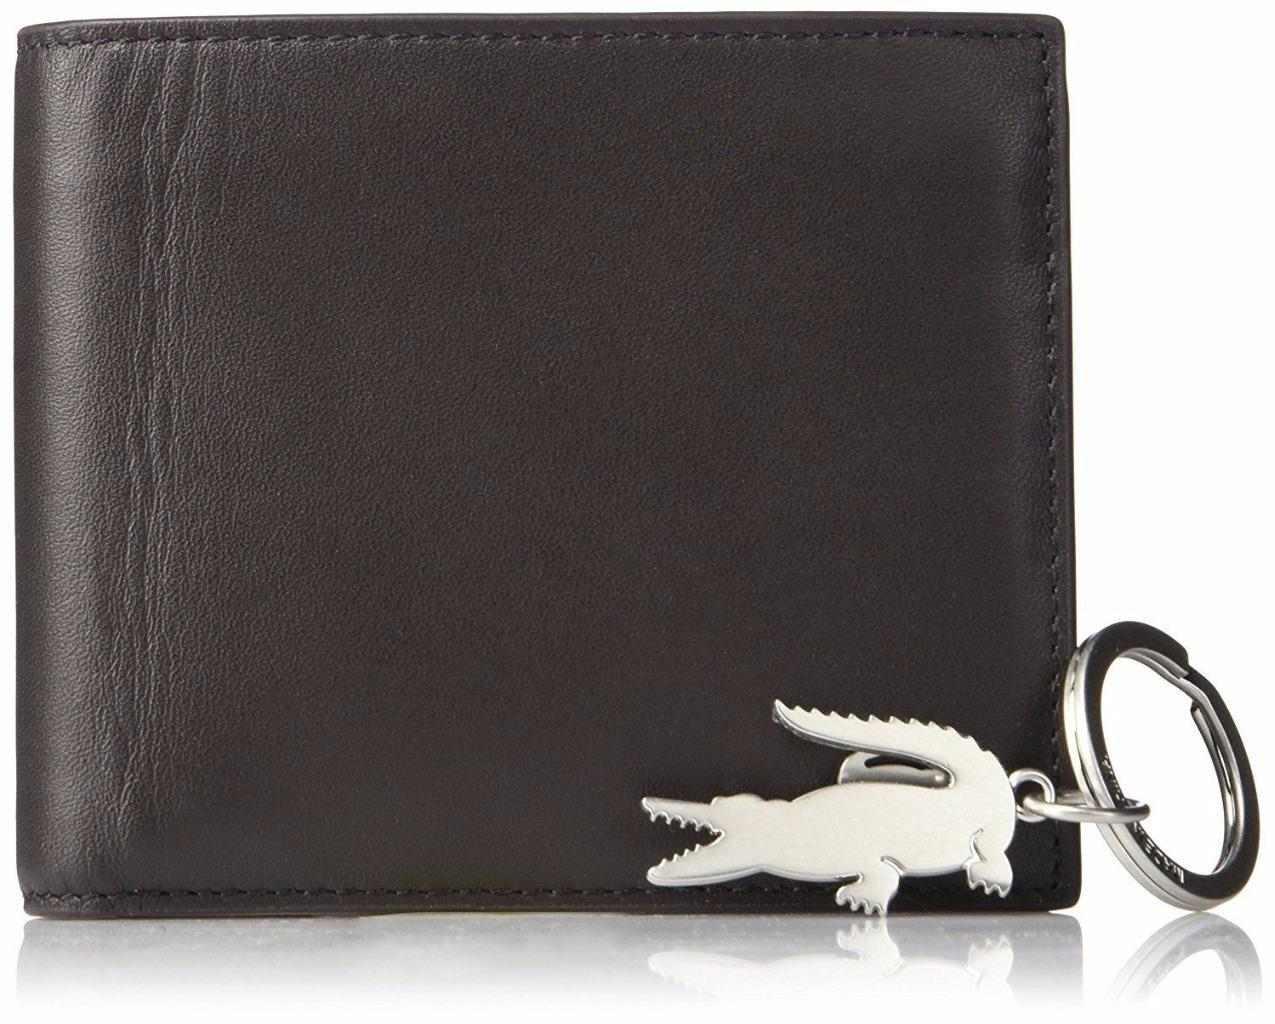 Lacoste Men's Billfold Coin Wallet Crocodile Key Ring Gift Set Brown NH2072FG